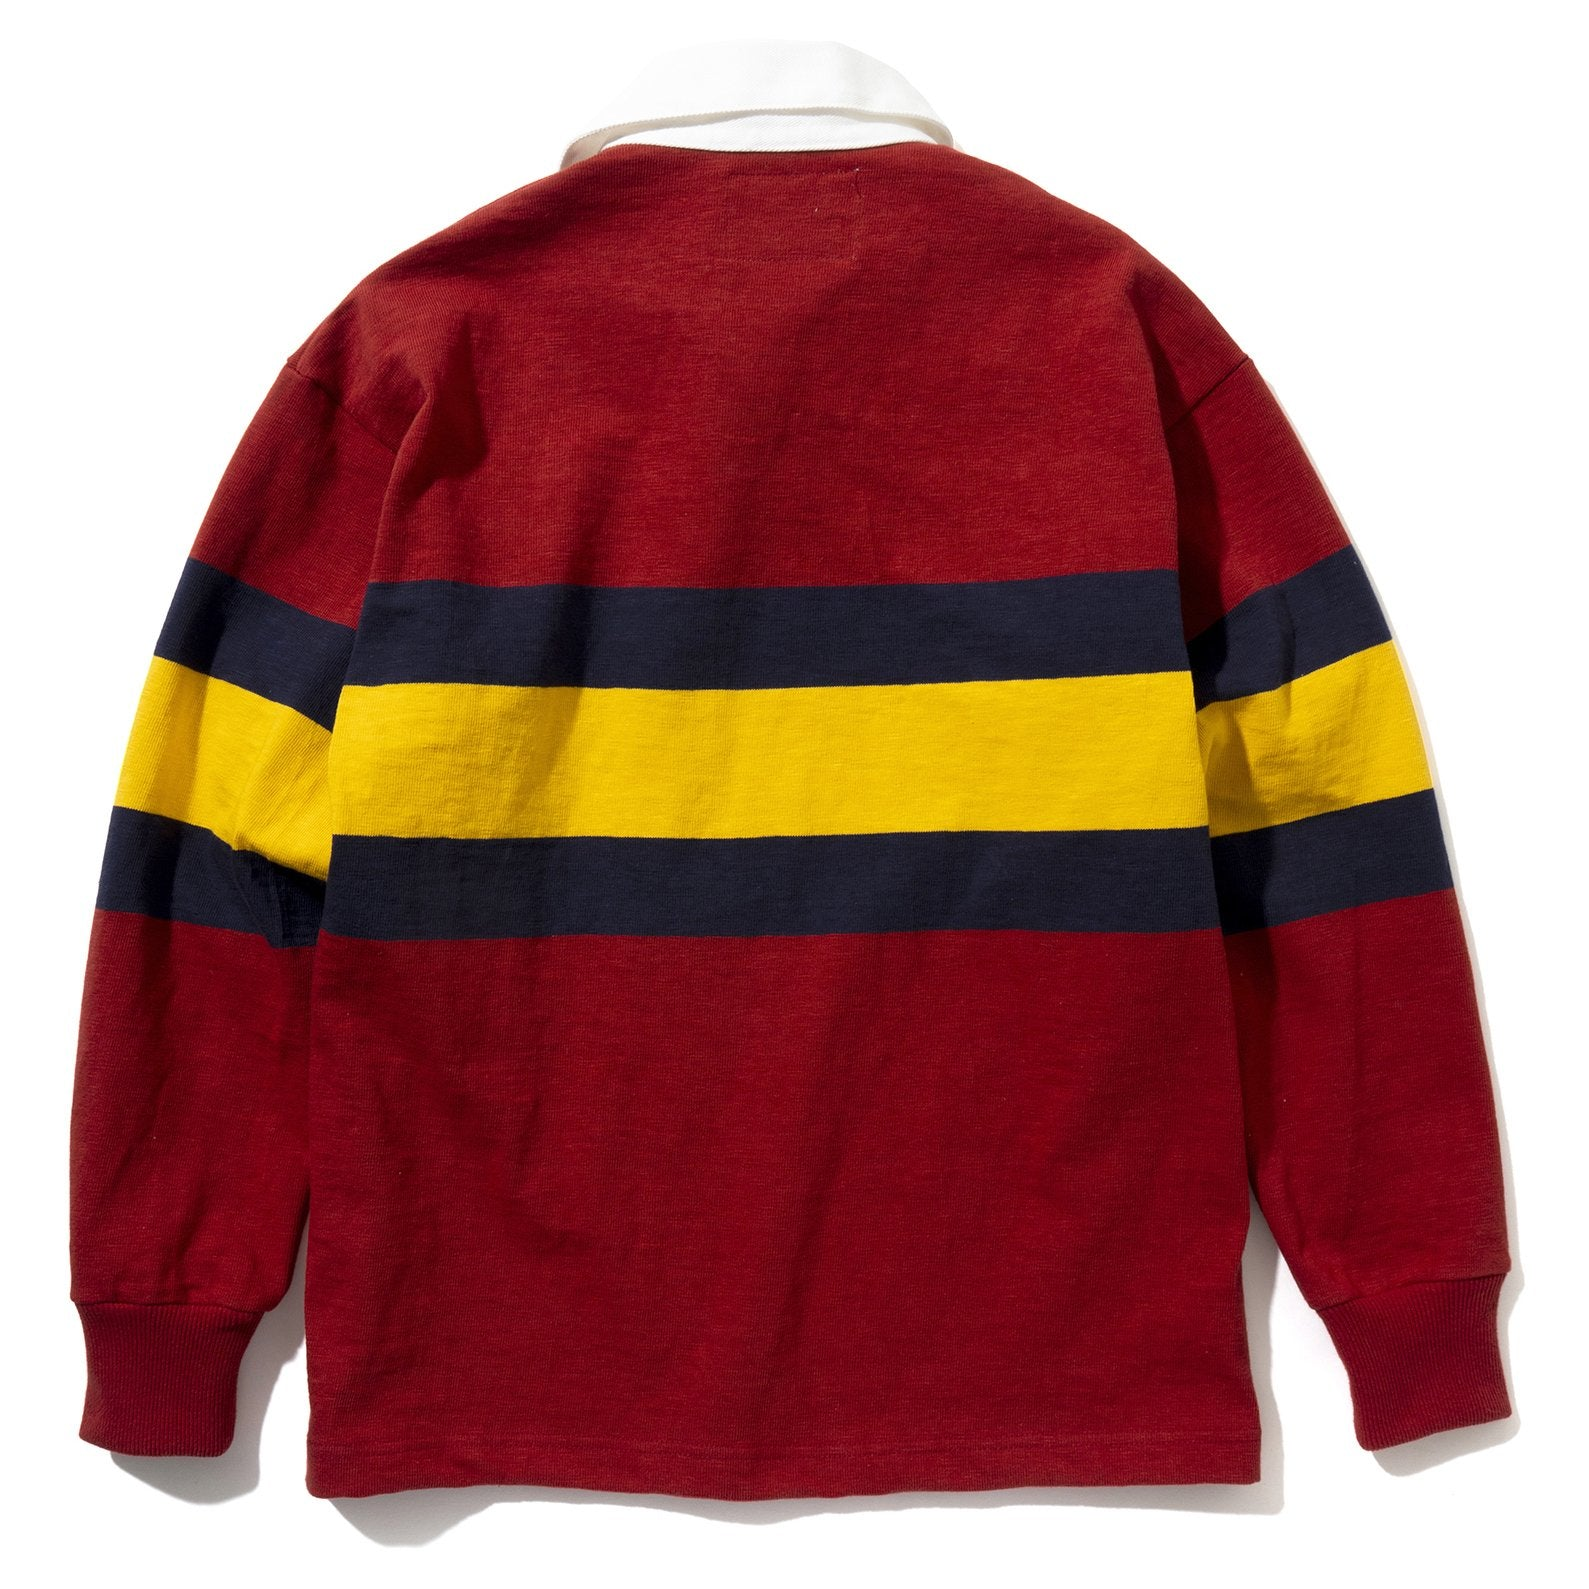 CLIMBERS' STRIPED RUGBY SHIRT